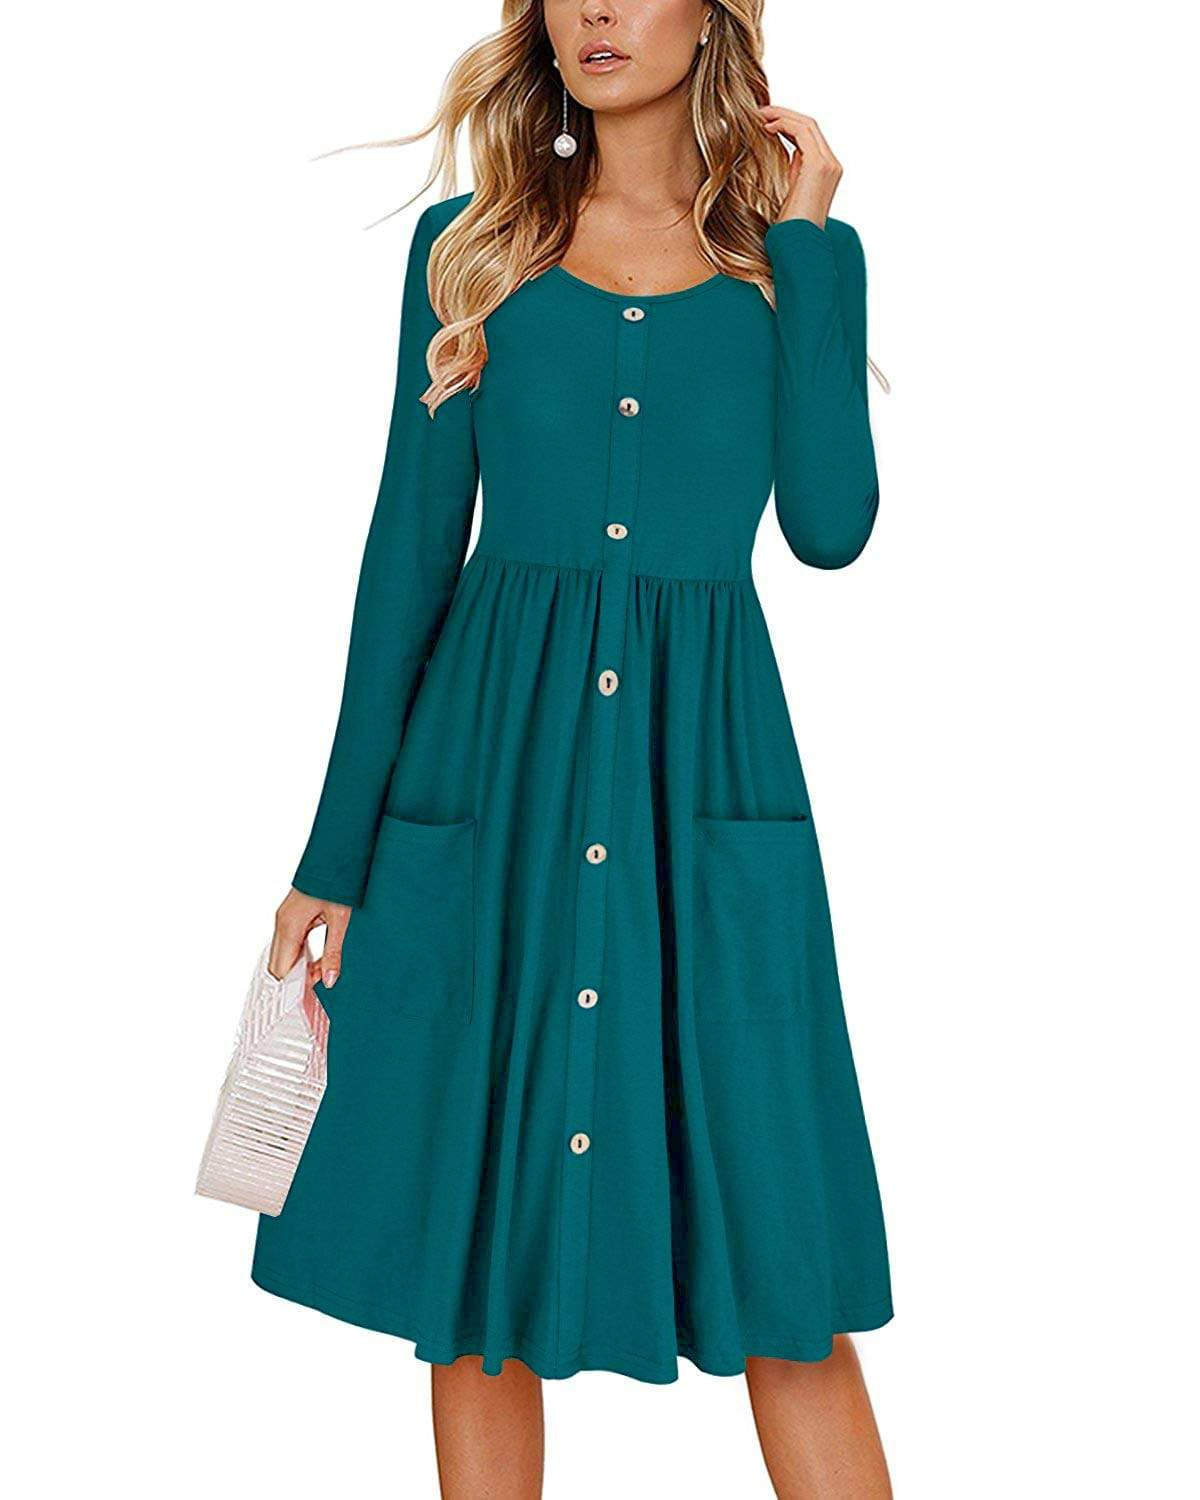 DAILYHAUTE Women's dress PEACOCK BLUE / S Haute Edition Women's Long Sleeve Button Down Dress with Pockets